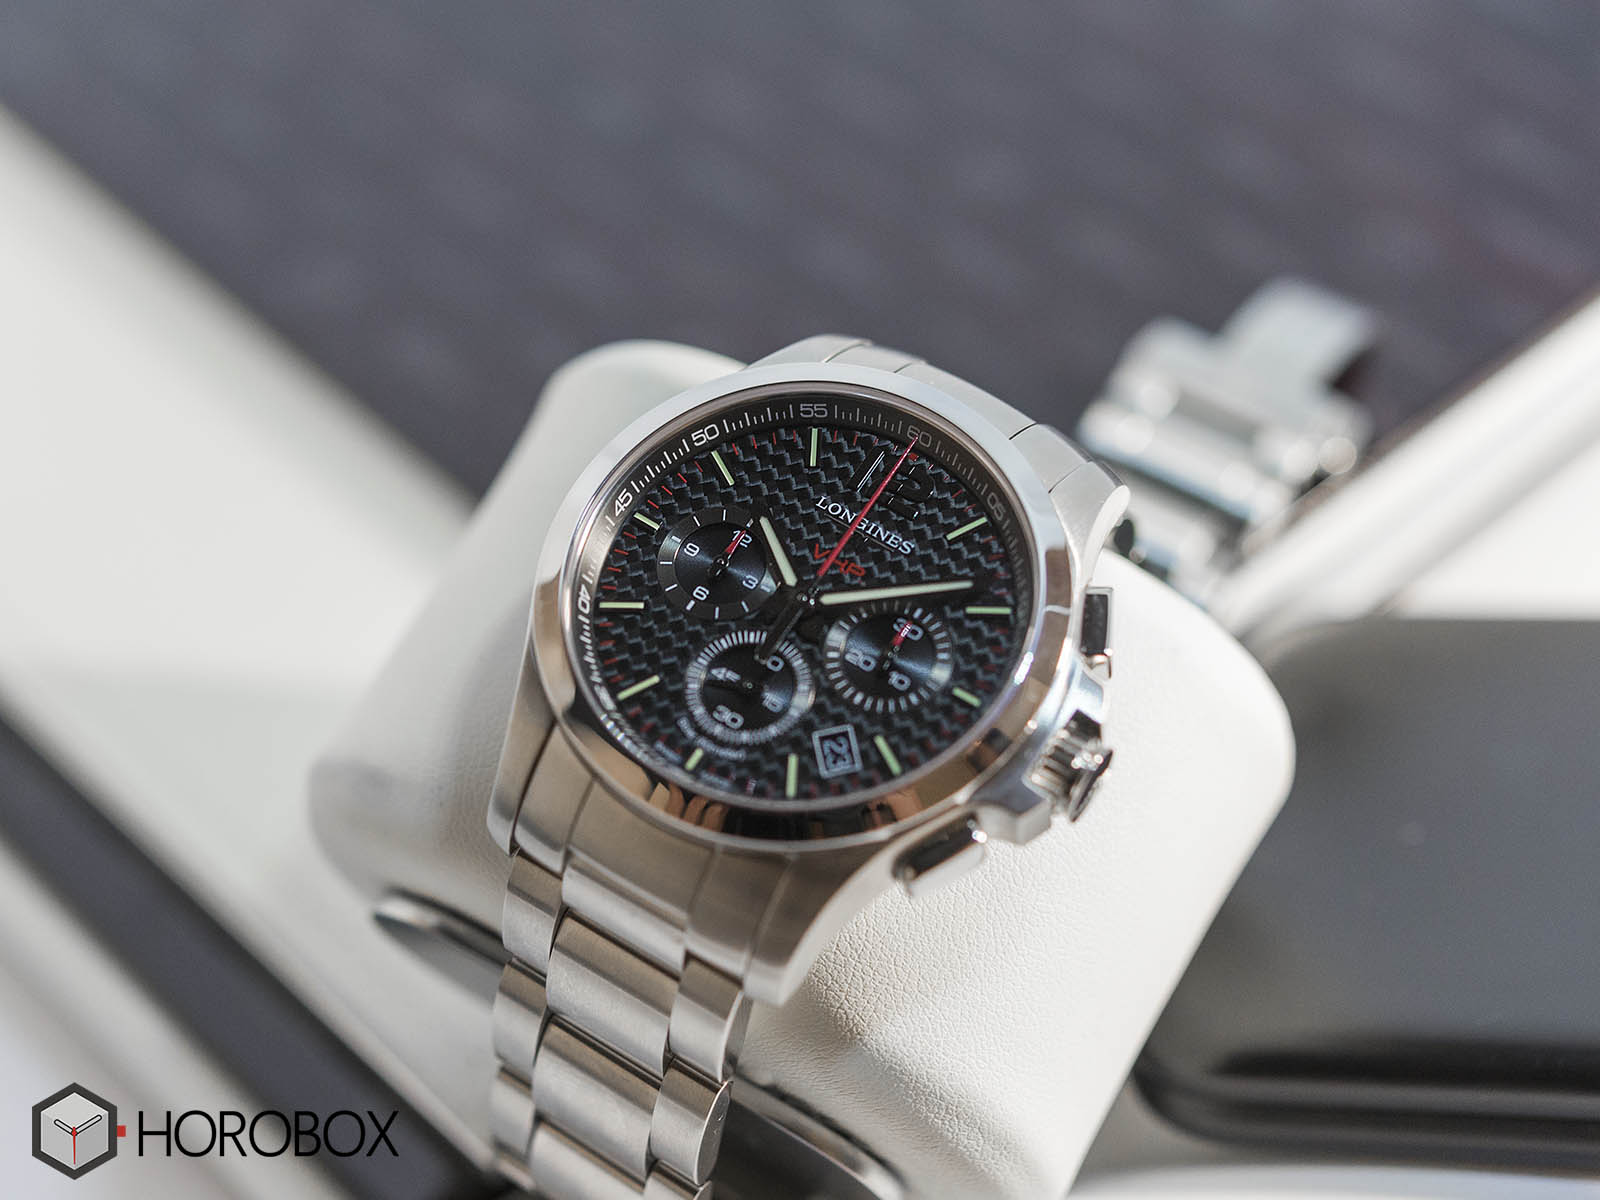 l3-727-4-66-6-longines-conquest-vhp-chronograph-1.jpg